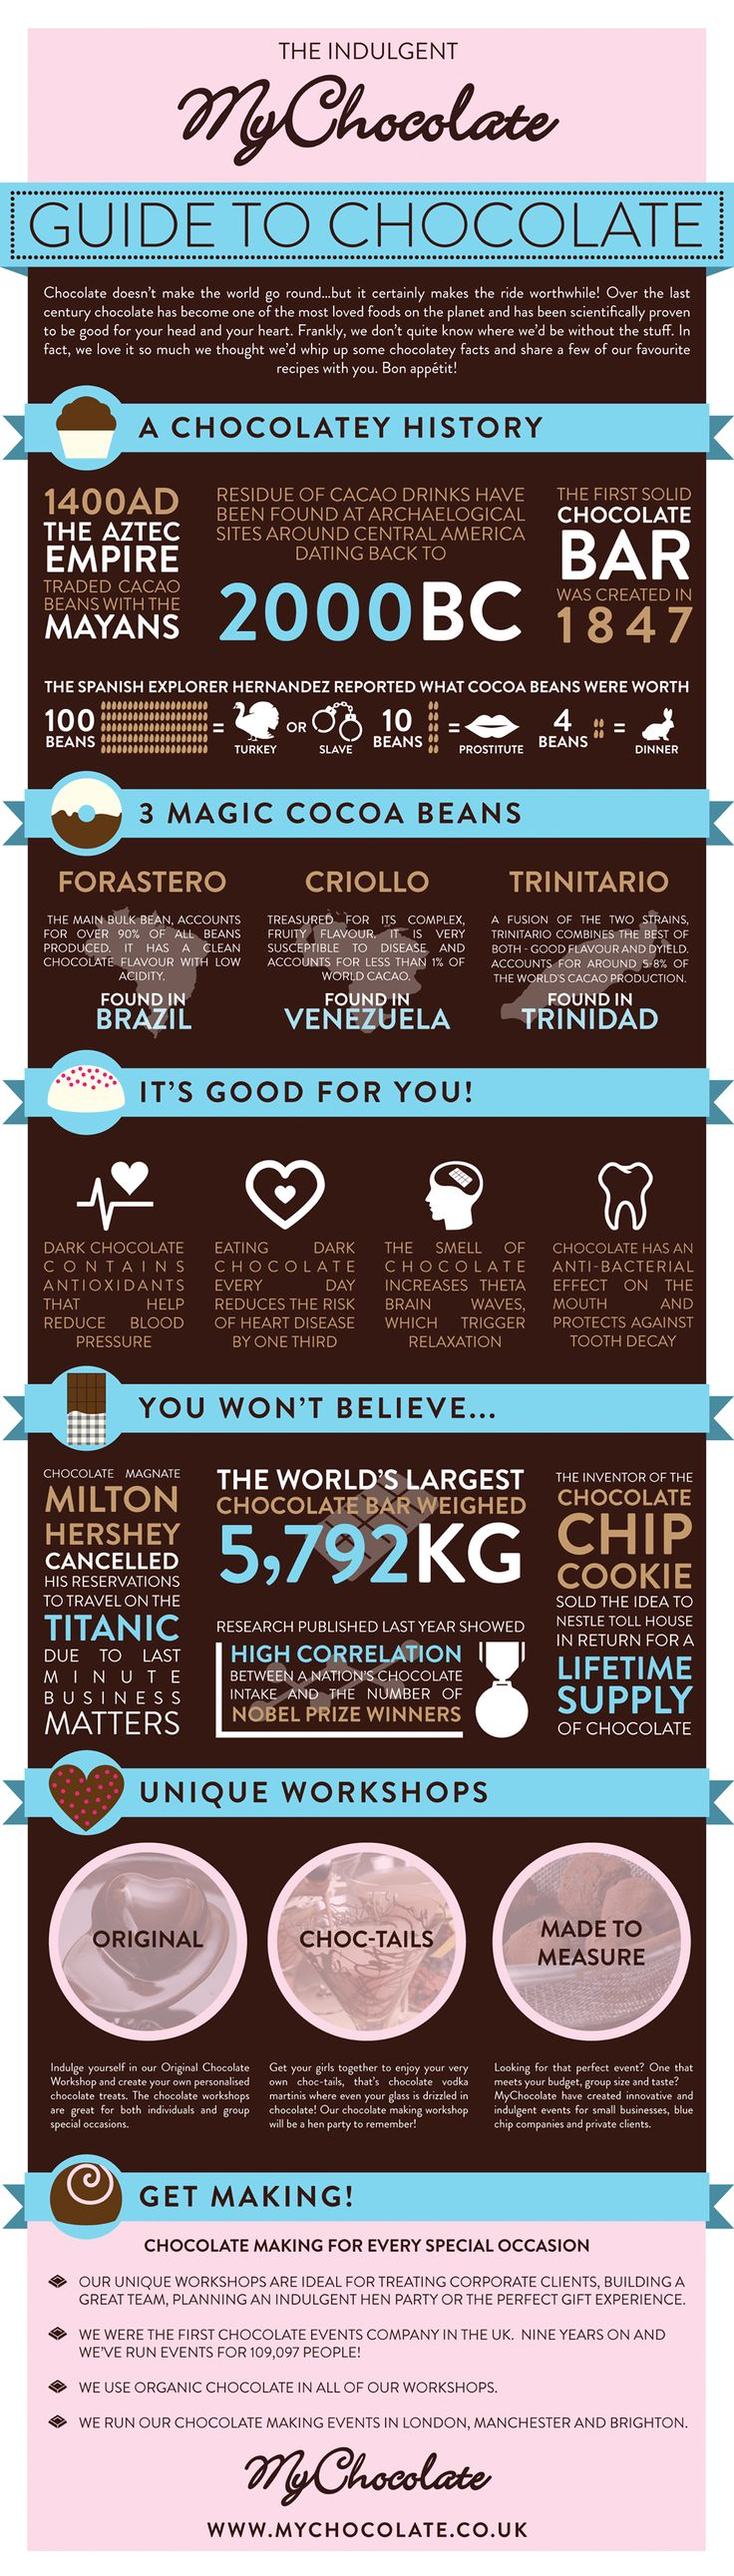 73 best Cacao images on Pinterest | Infographics, Cocoa and ...